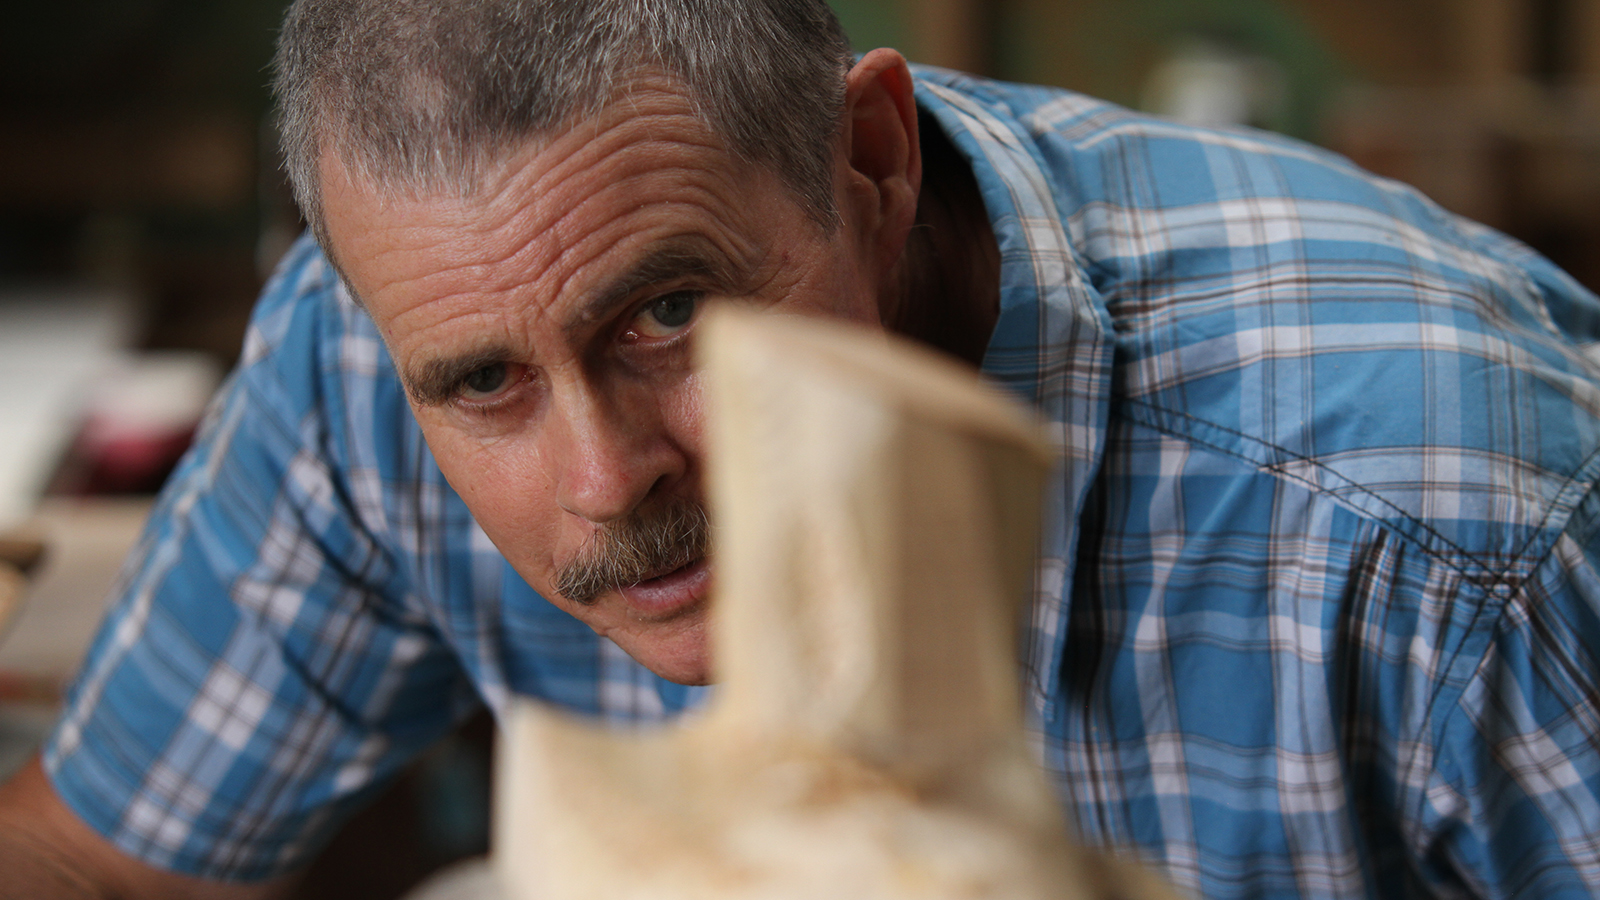 Warren Wright builds saddletrees for working cowboys from his workshop in New Zealand.